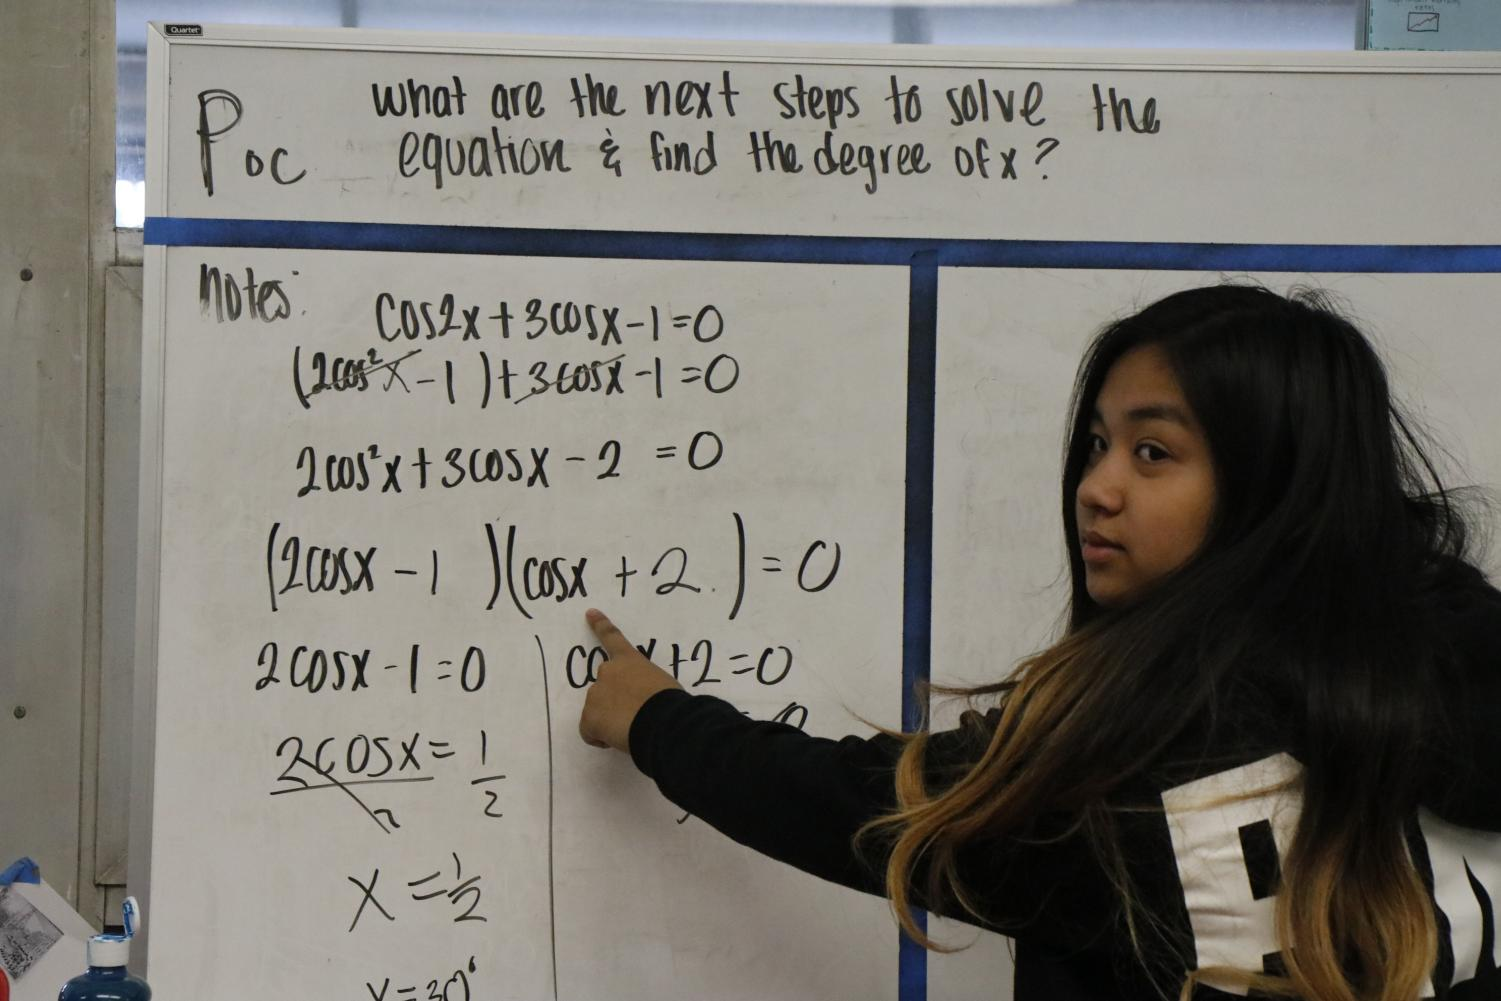 Senior Alyssa Nueno presents a question to her collaborative study group in AVID. She points out the correct steps it takes to solve the equation and where she was confused at first.